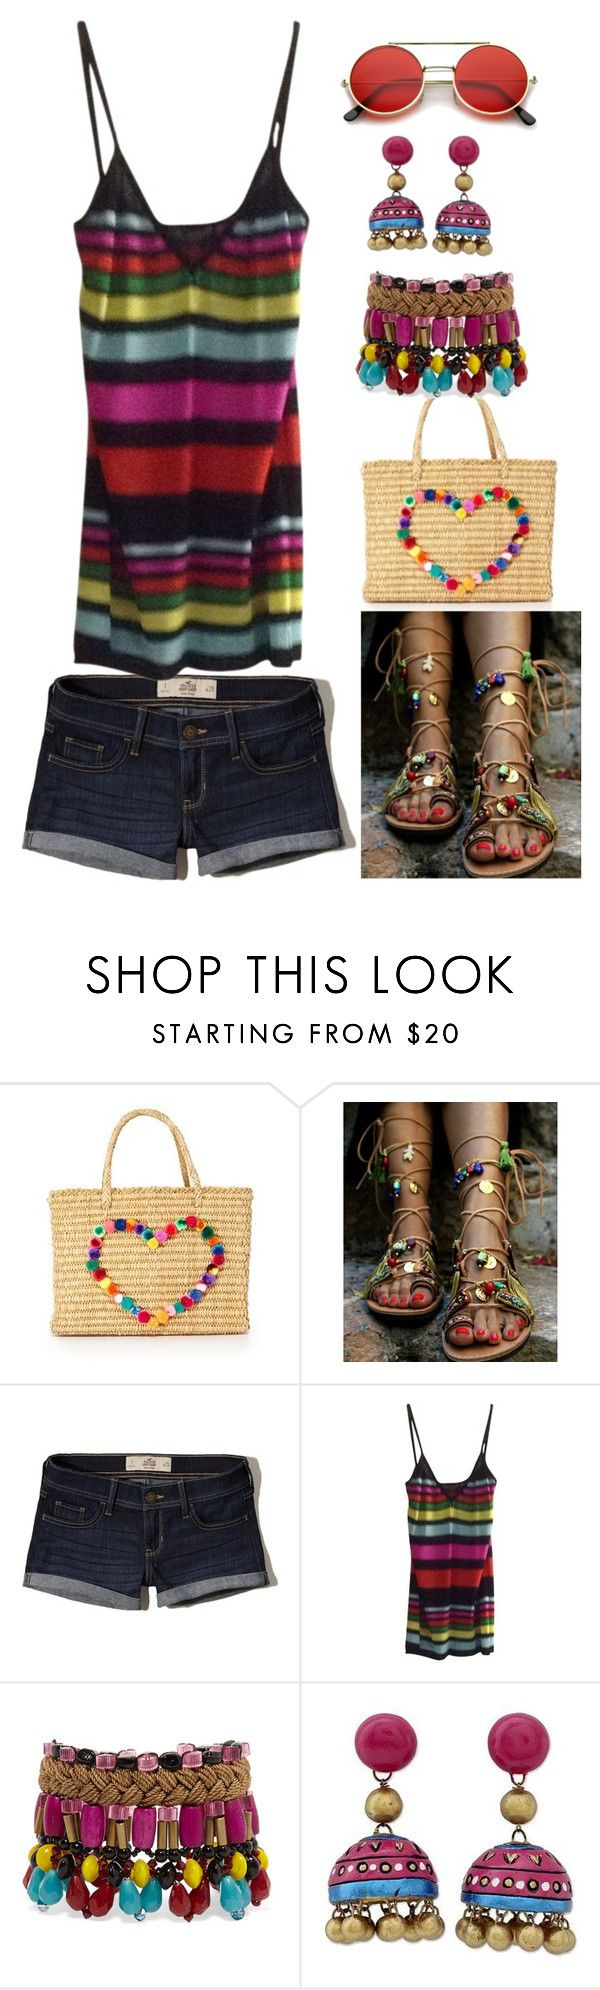 """Boémio"" by alice-fortuna ❤ liked on Polyvore featuring Nannacay, Hollister Co., Dolce&Gabbana, Etro, NOVICA and ZeroUV"